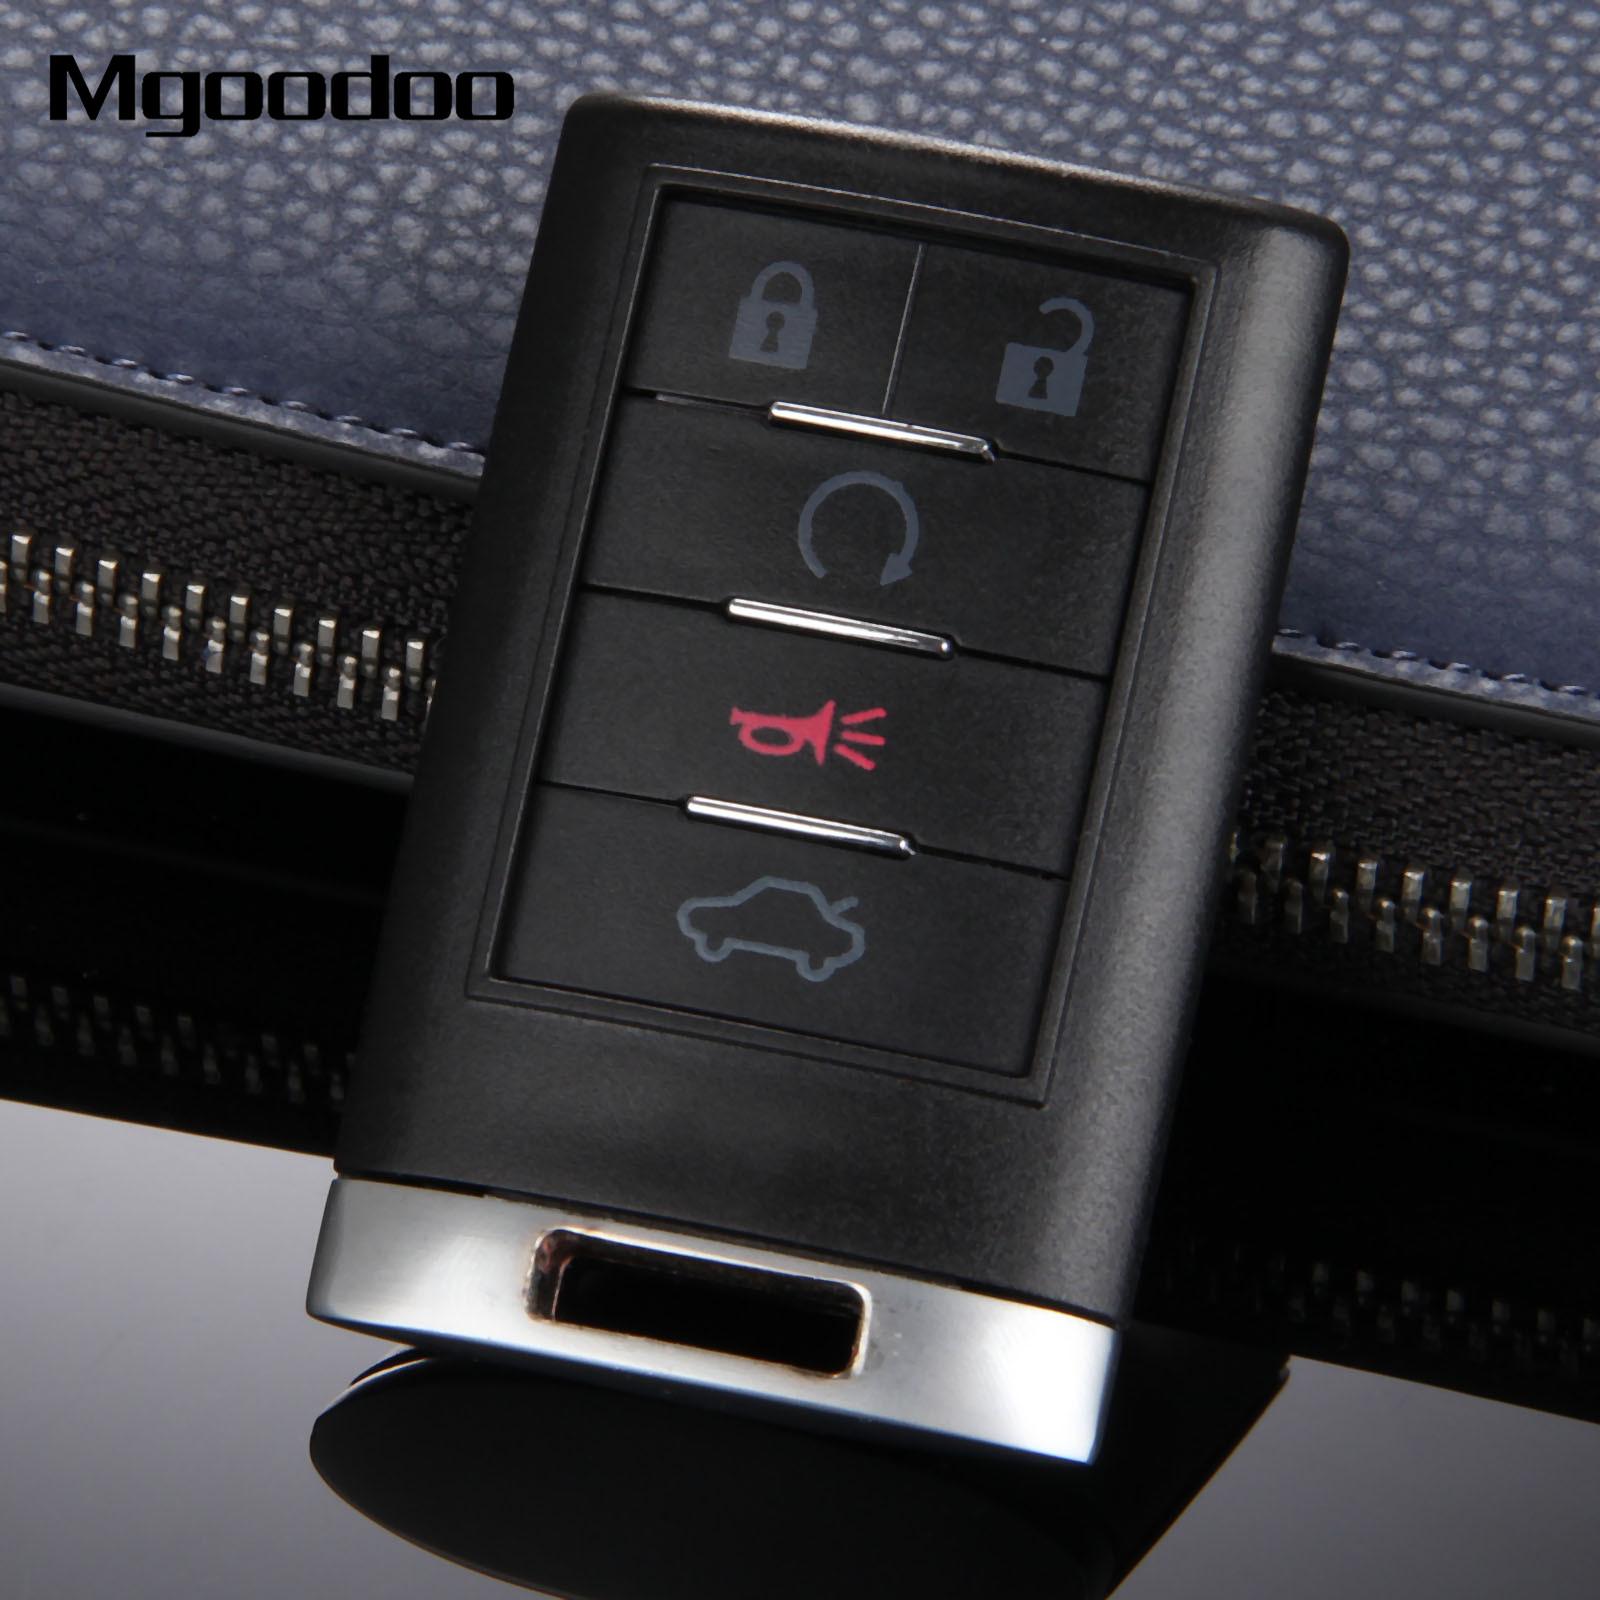 Mgoodoo 5 button keyless smart remote key shell case for cadillac cts dts sts escalade car